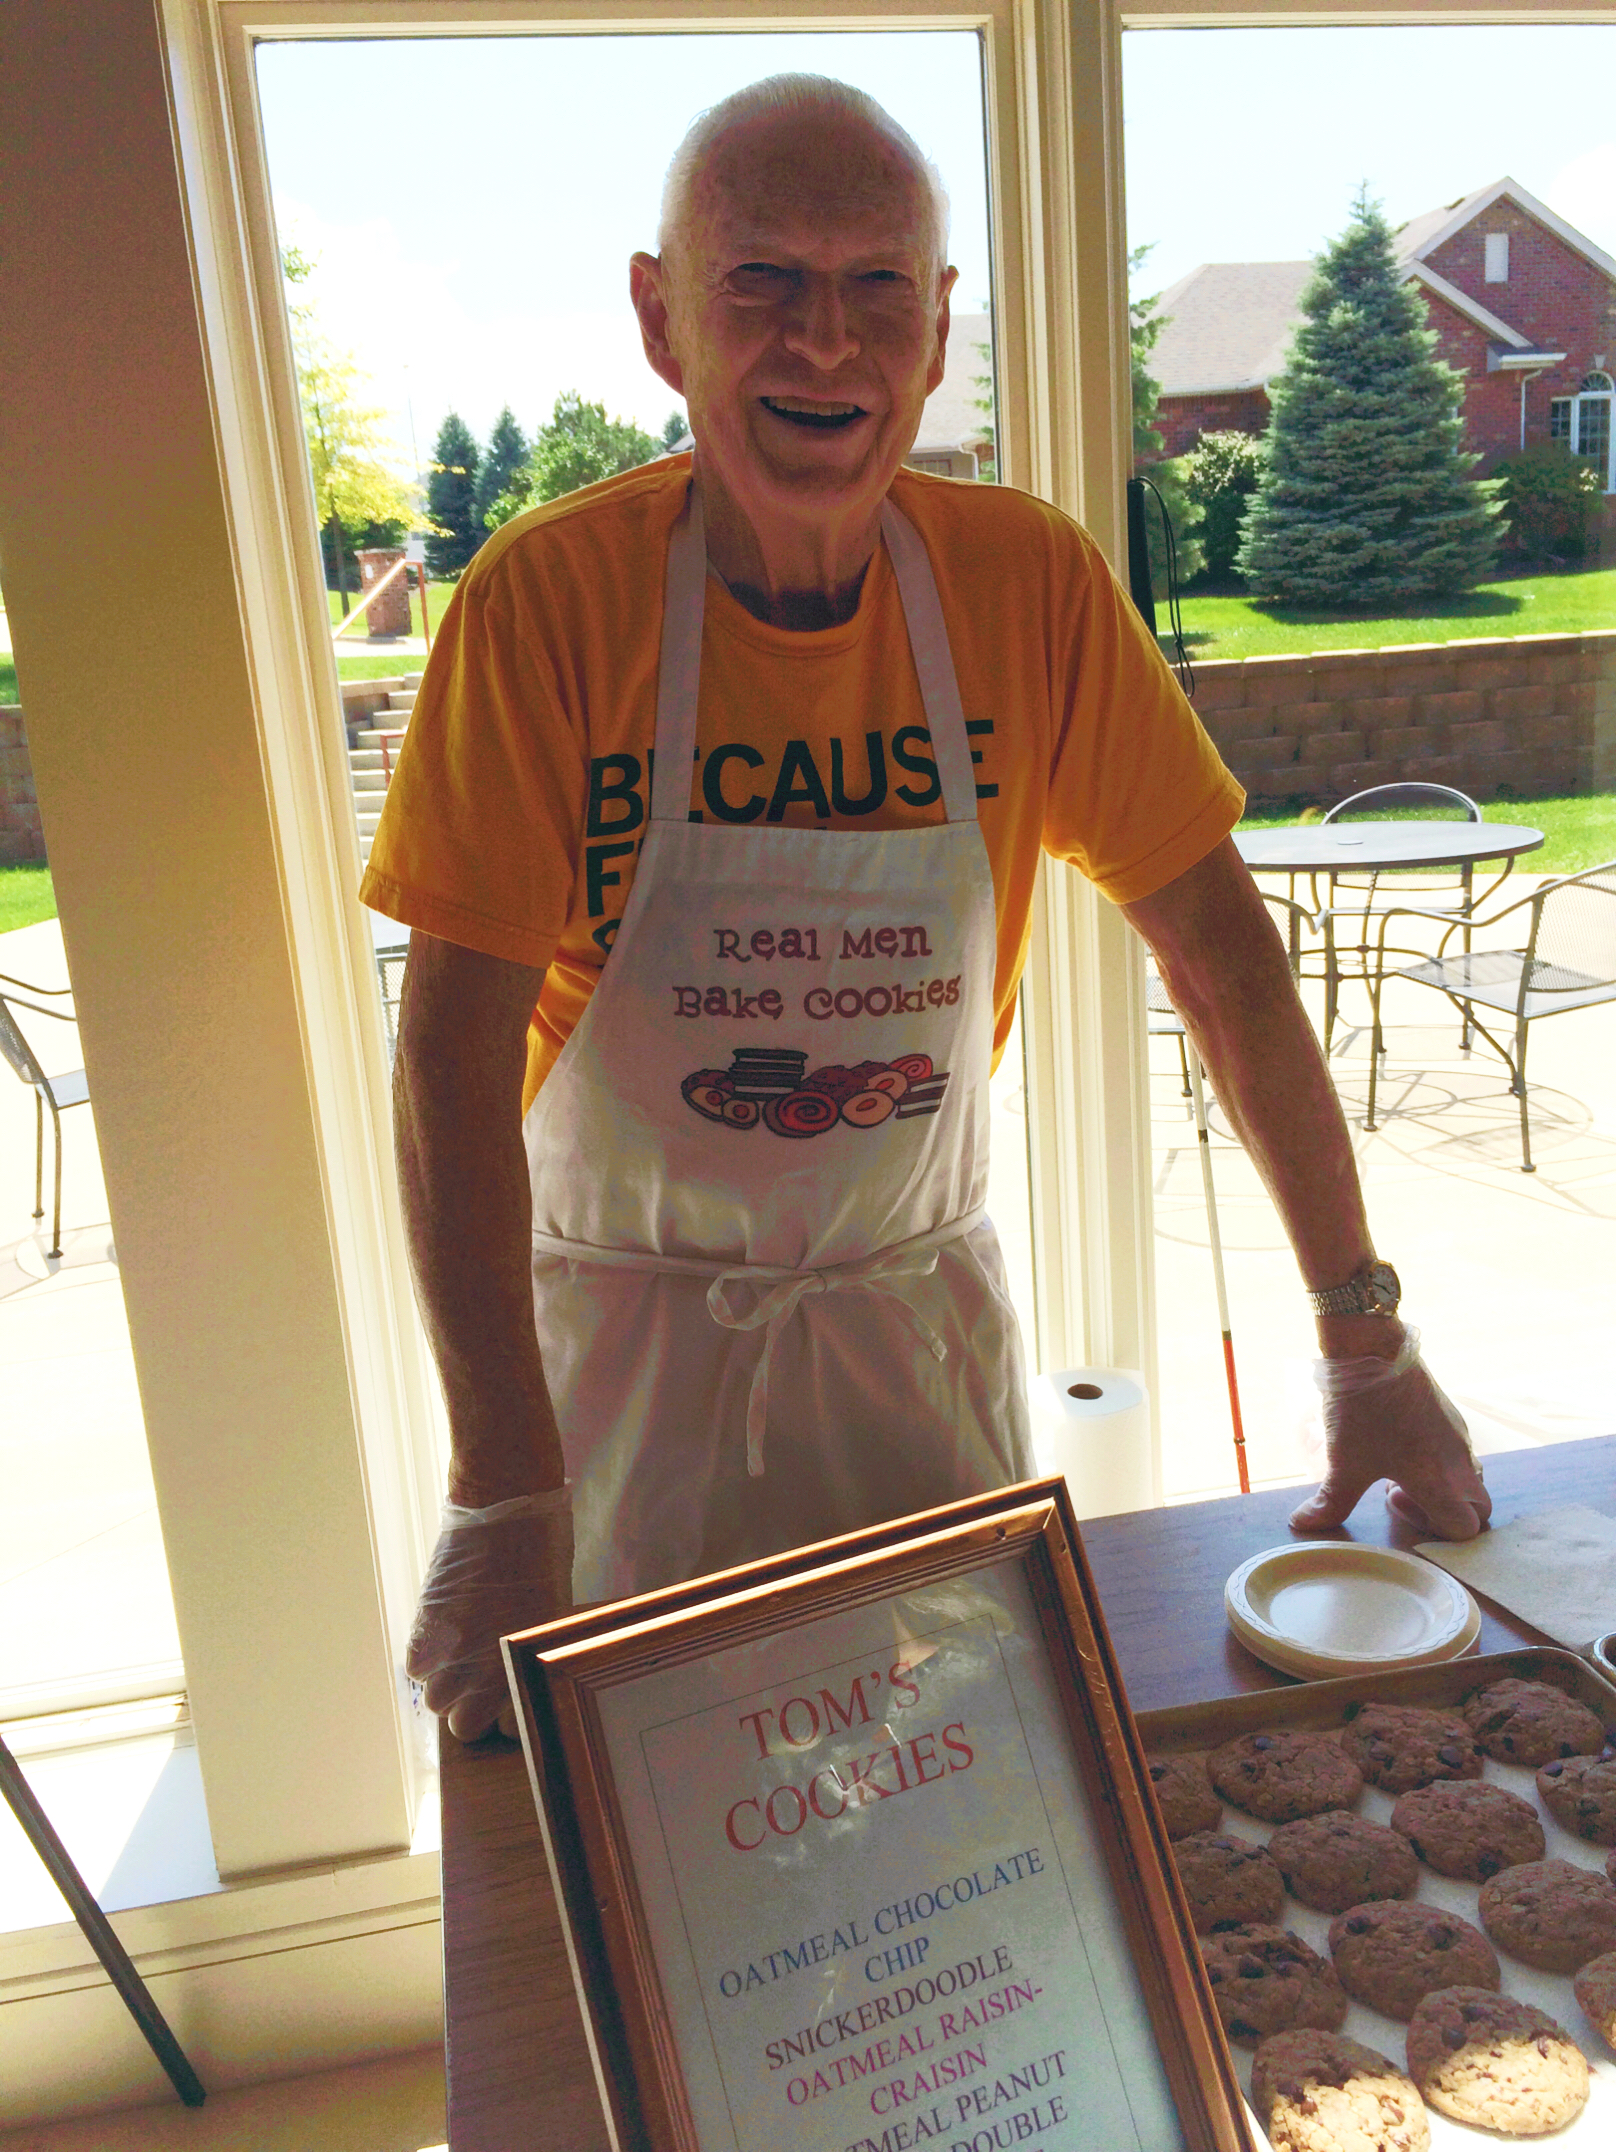 Tom with his special apron that his granddaughter gave him